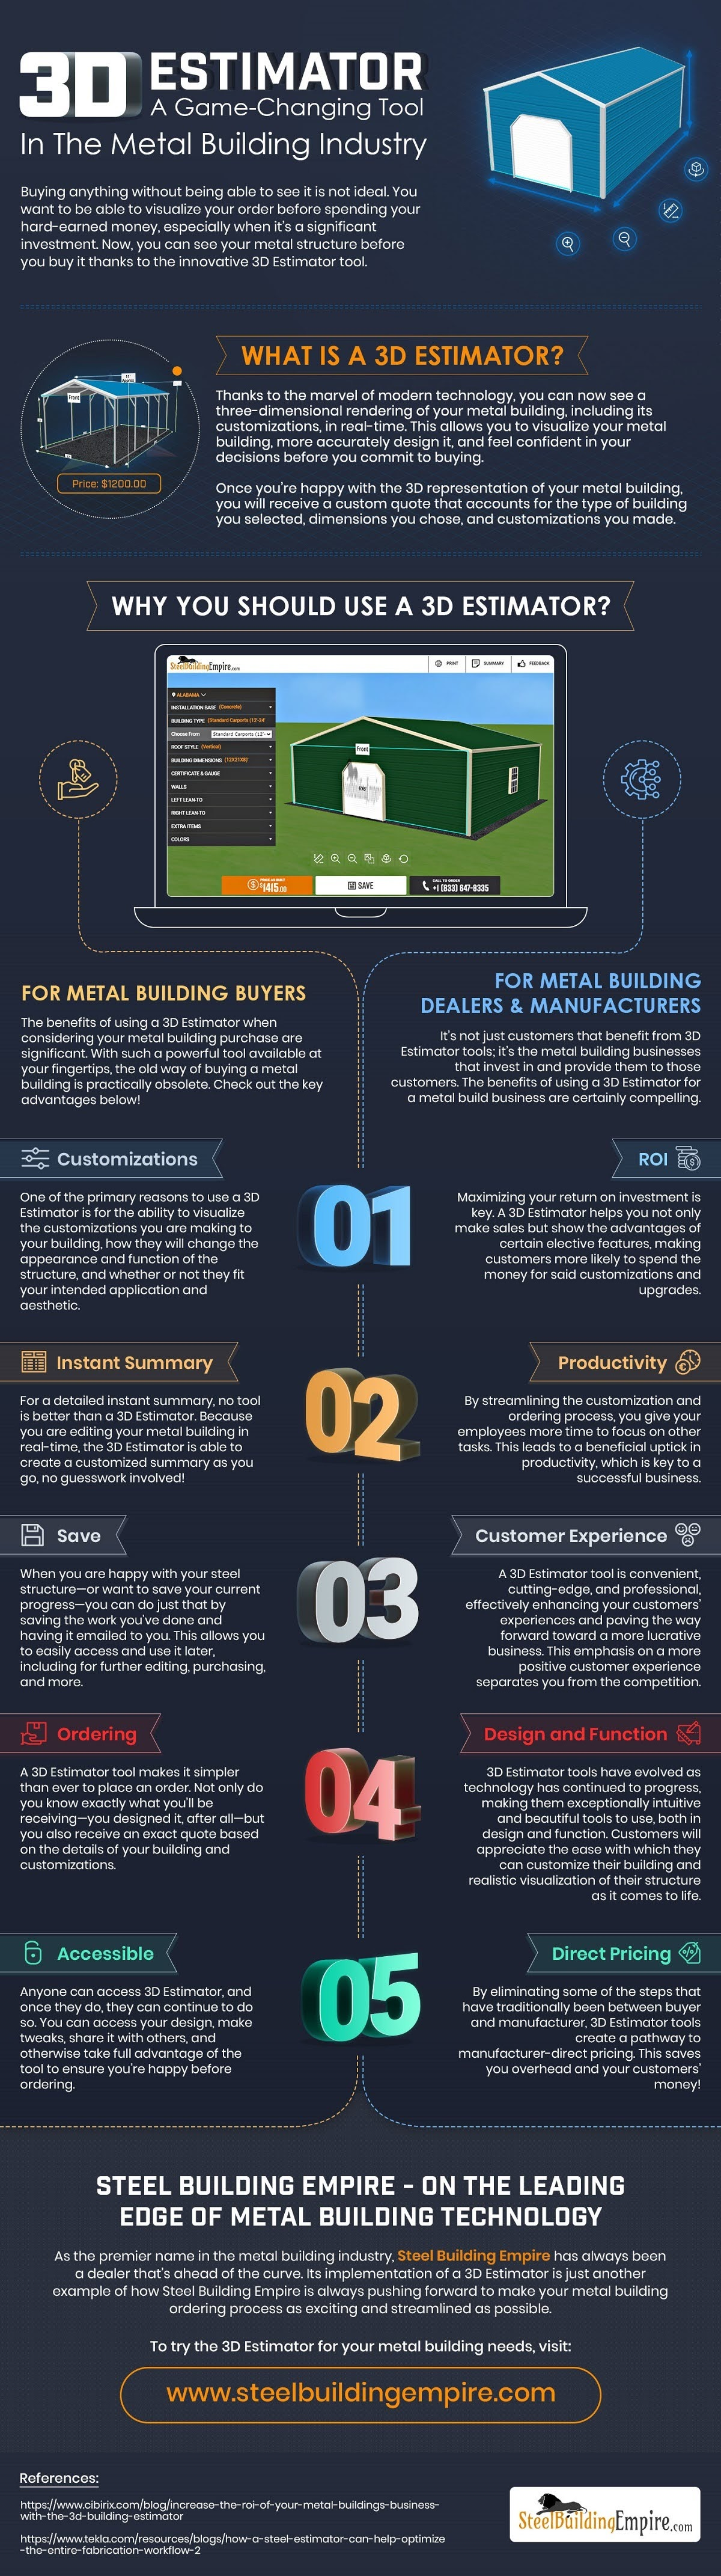 spaulding-injury-law-the-ultimate-bikers-guide-to-motorcycle-helmets-infographic